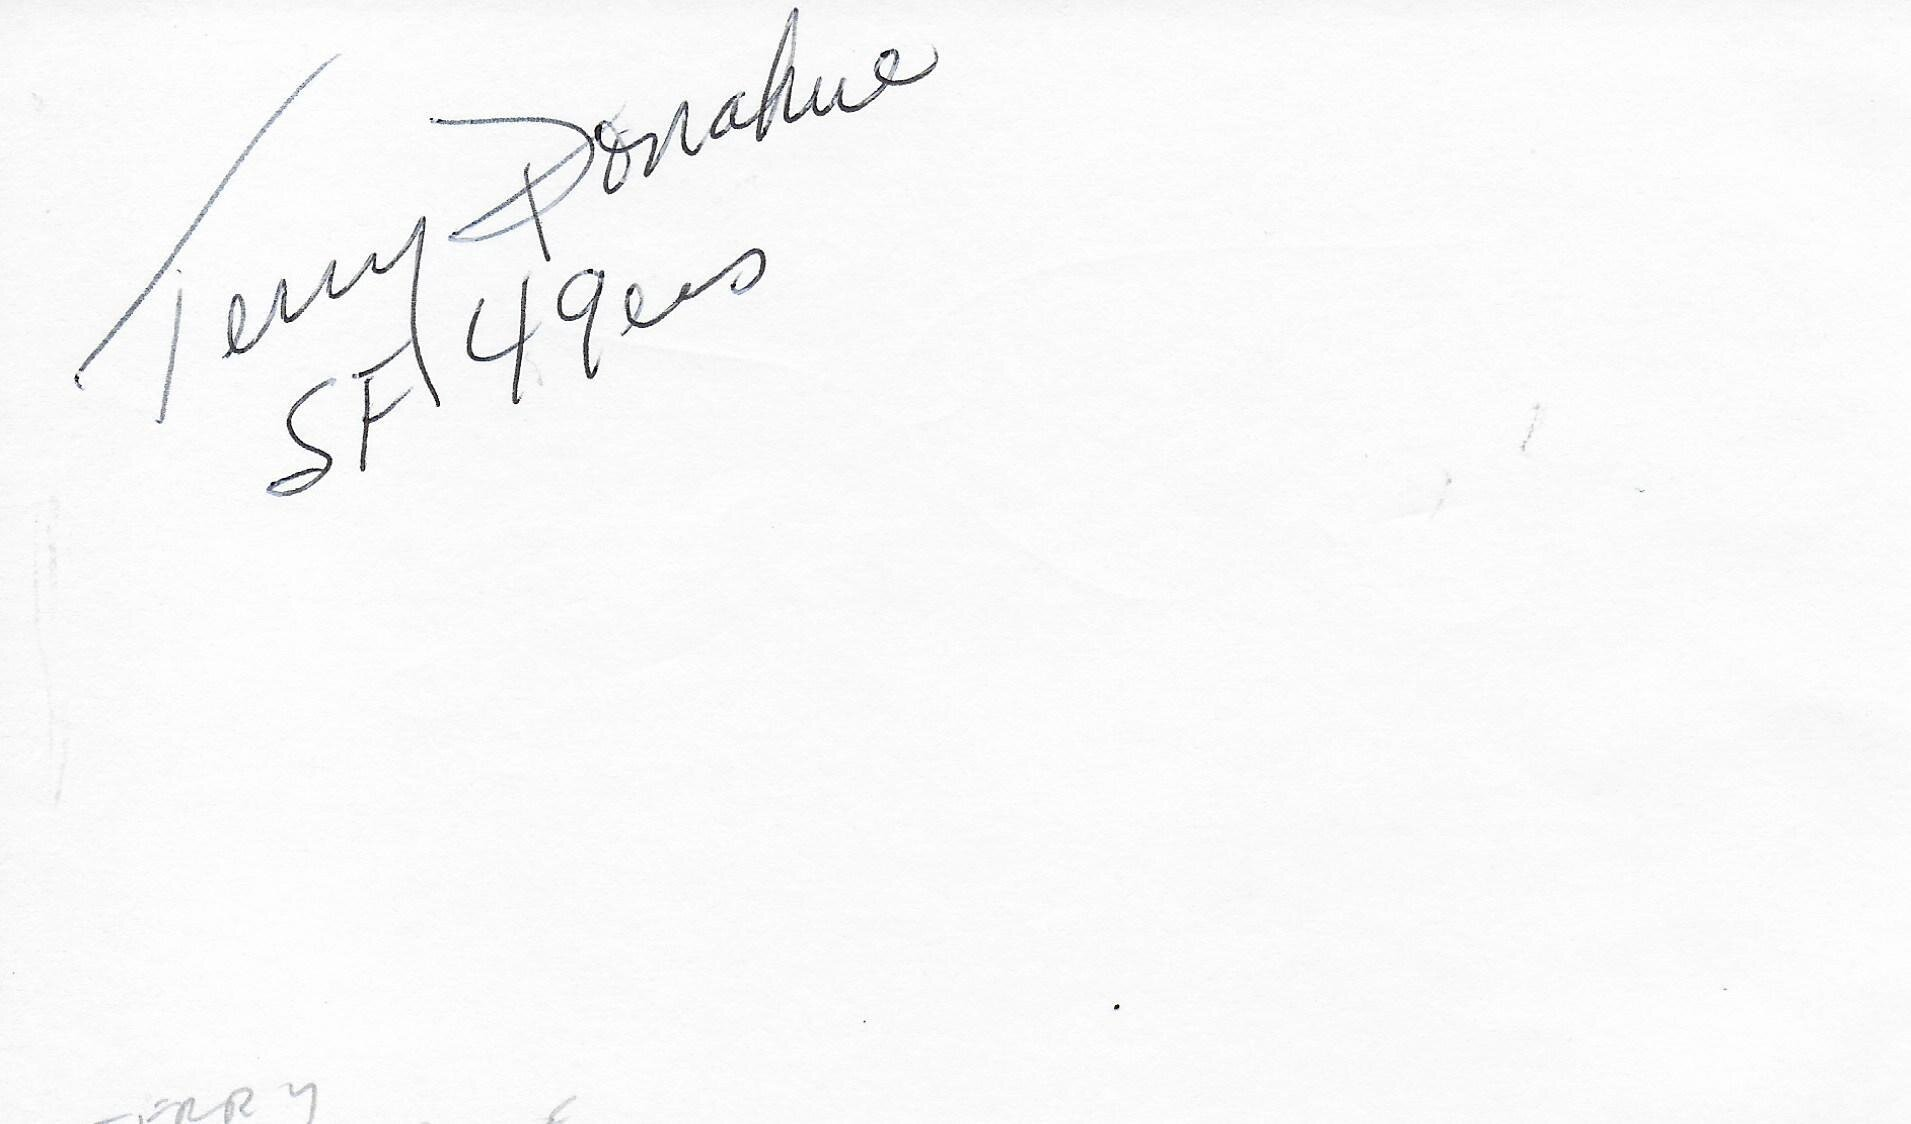 Terry Donahue SF 49ers signed album page/card